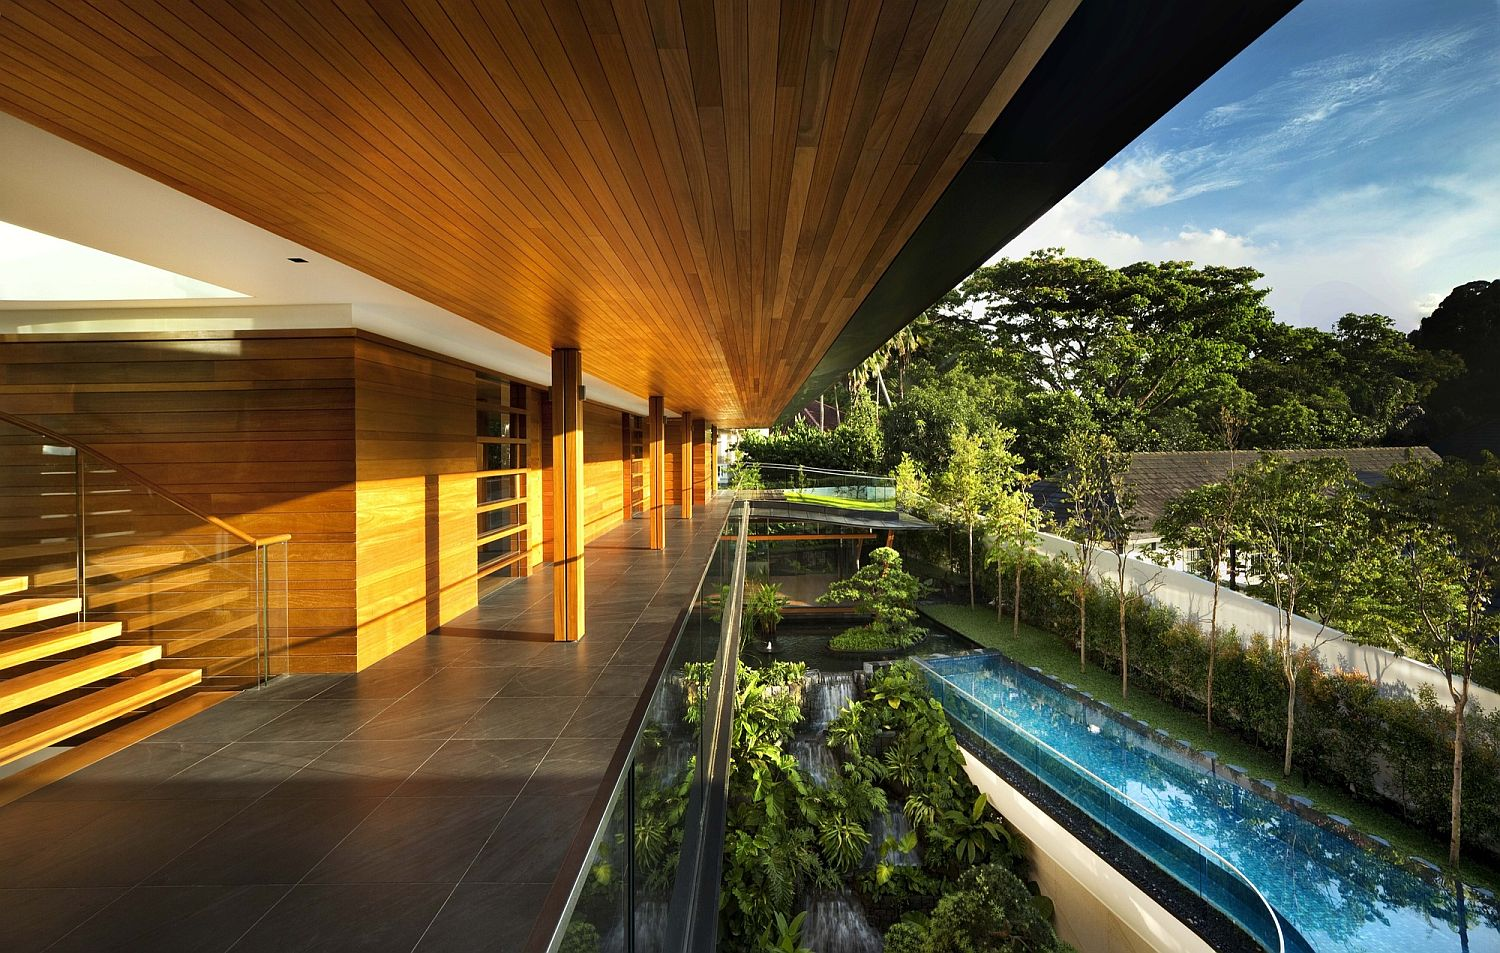 Sweeping decks and swimming pool overlook the botanical garden outside